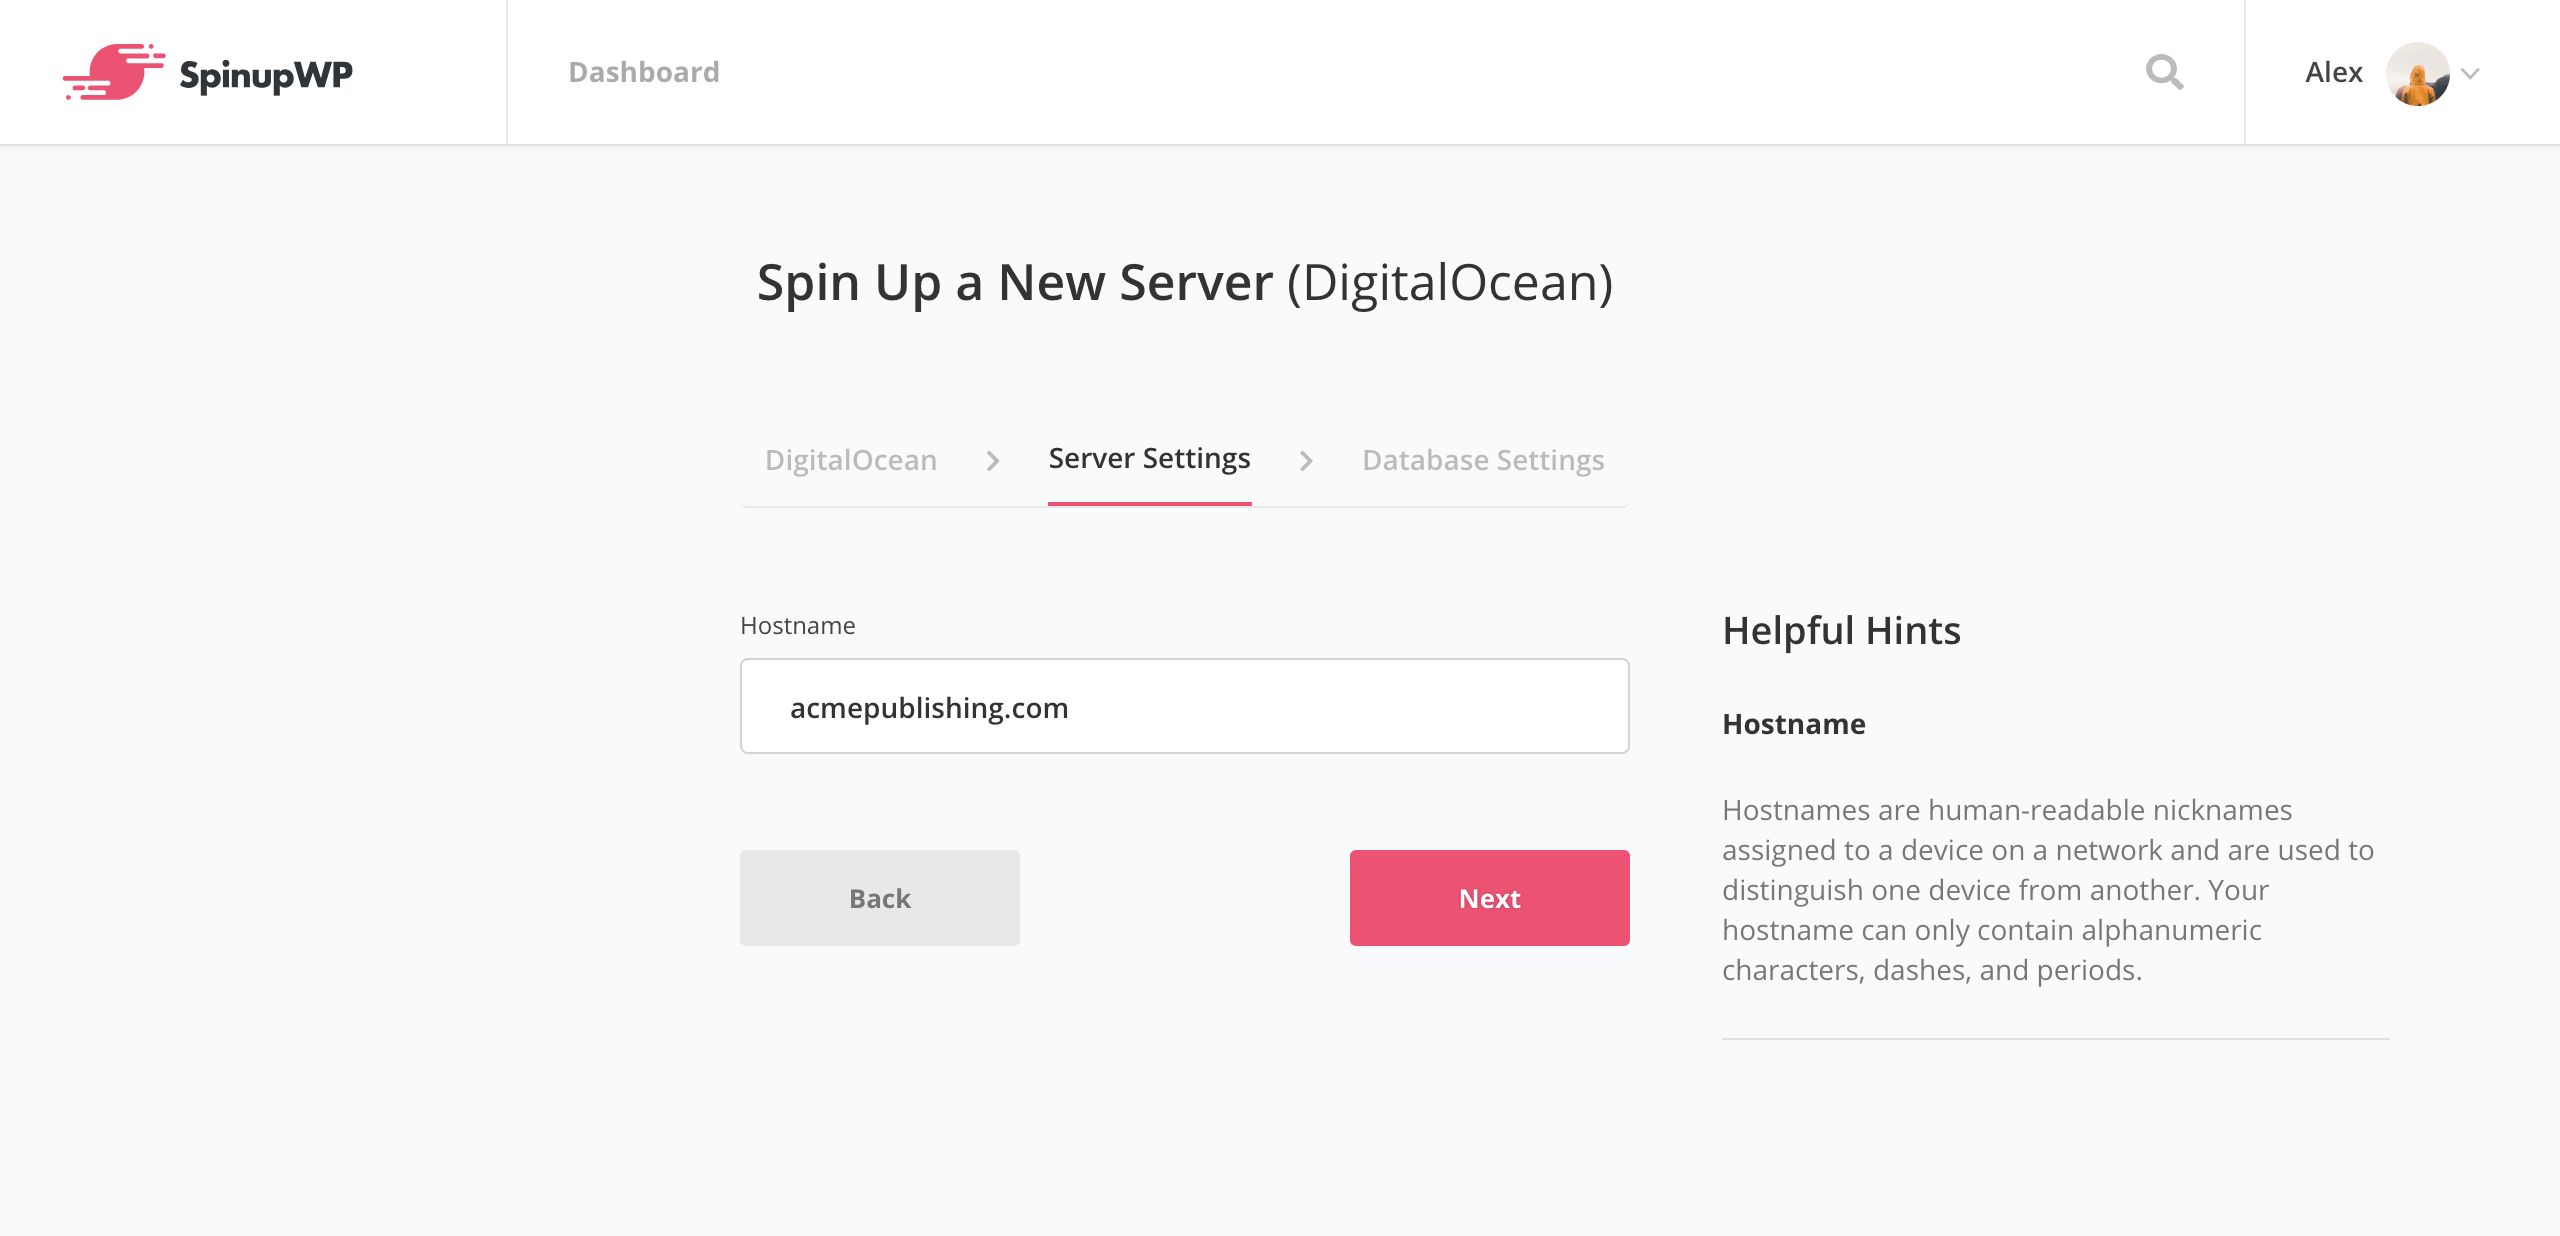 SpinupWP new server settings